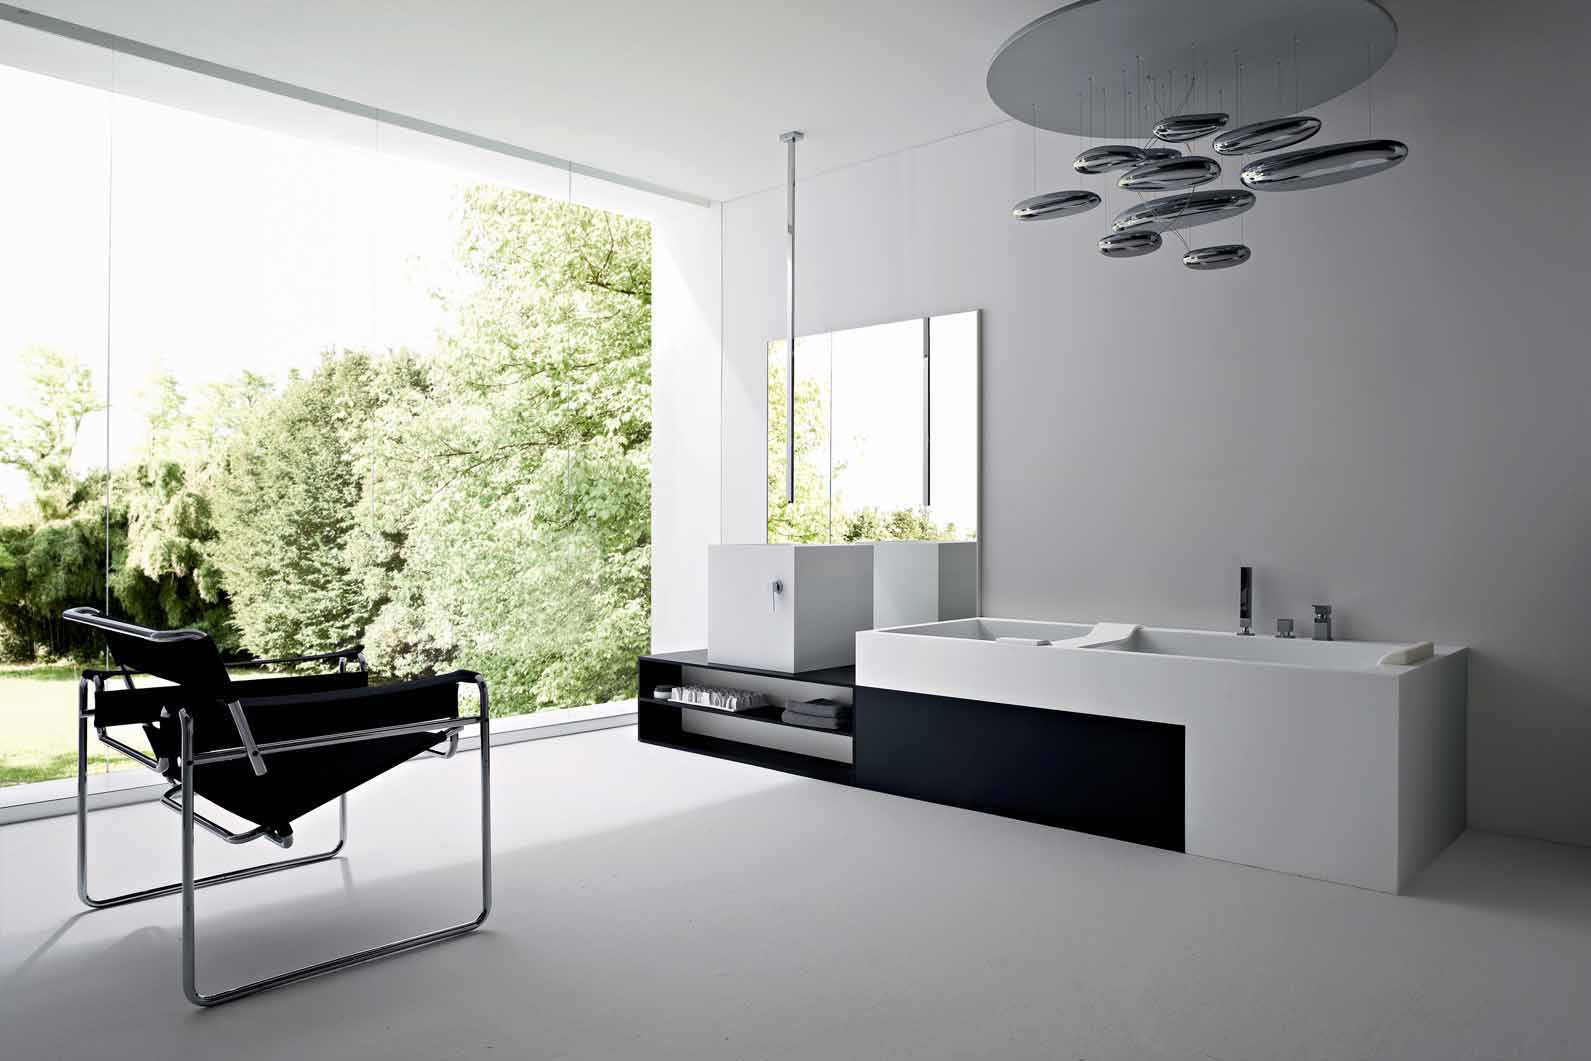 One Bedroom Apartment Decorating Italian Bathing Rooms Interior Design House Interior